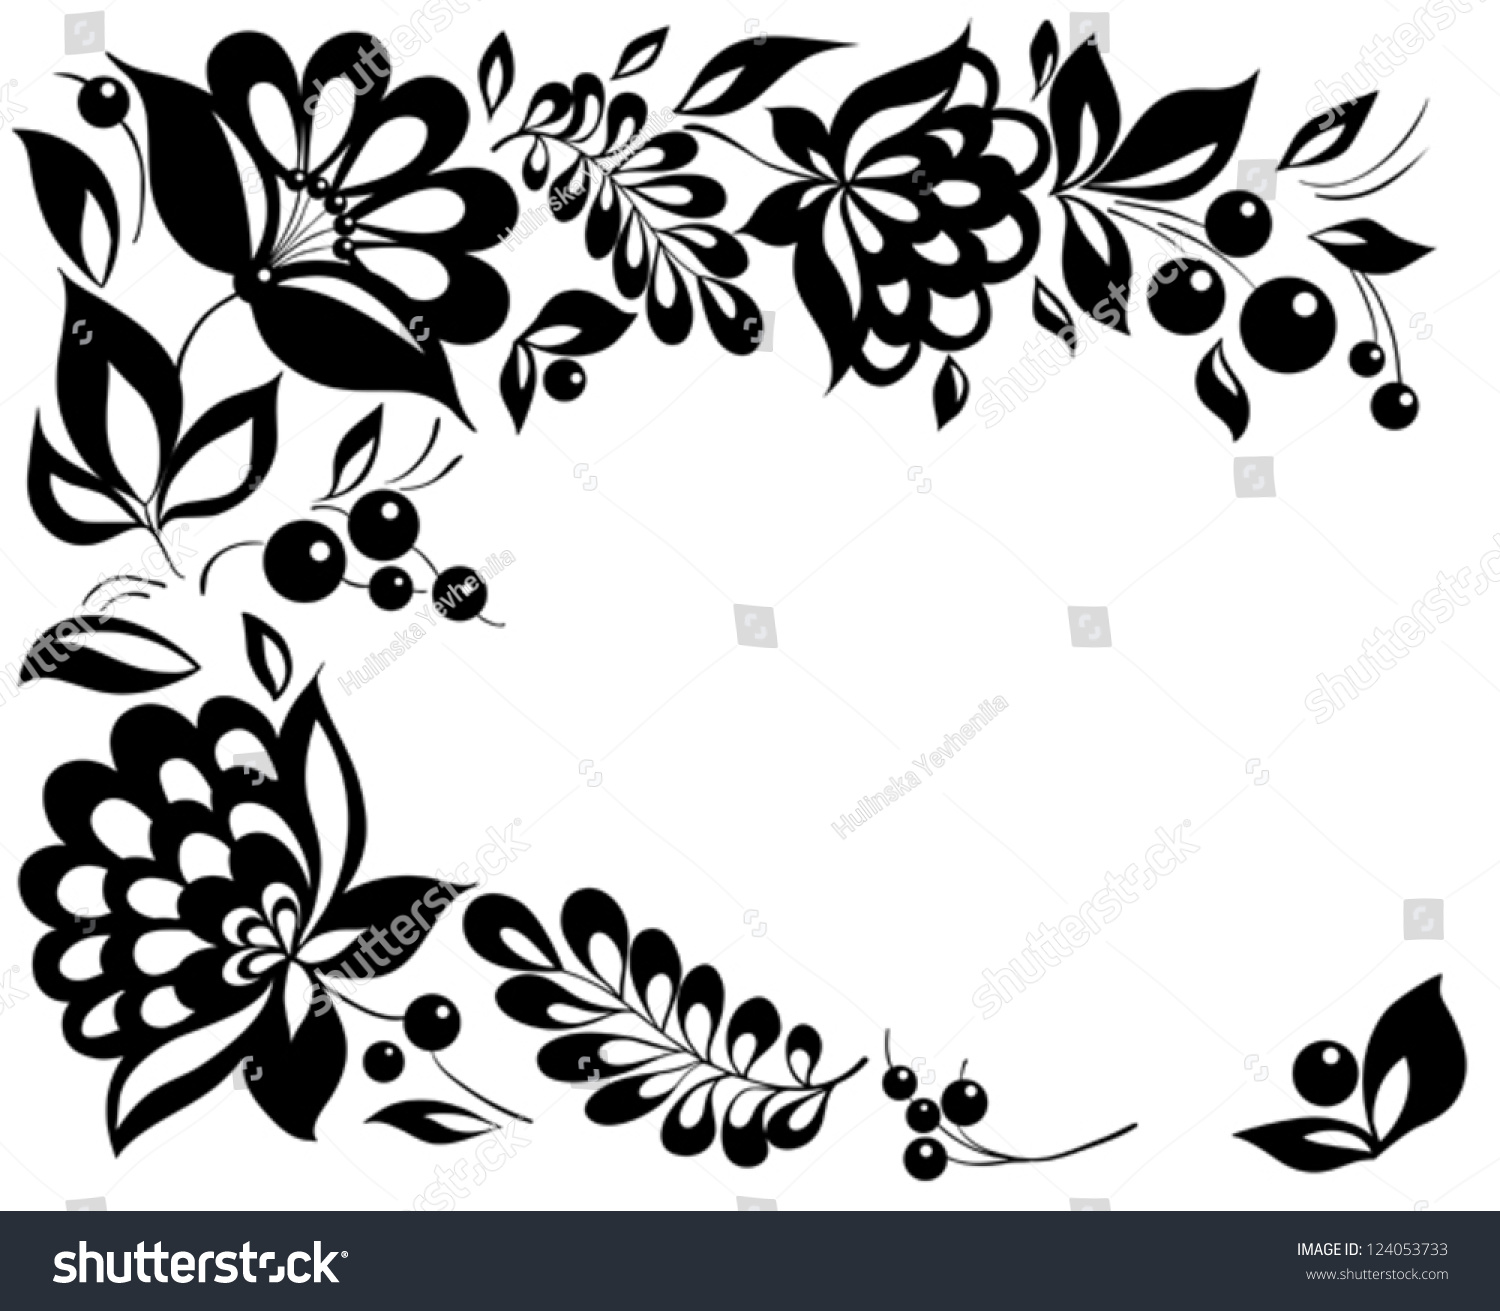 Blackandwhite Flowers Leaves Floral Design Element Stock